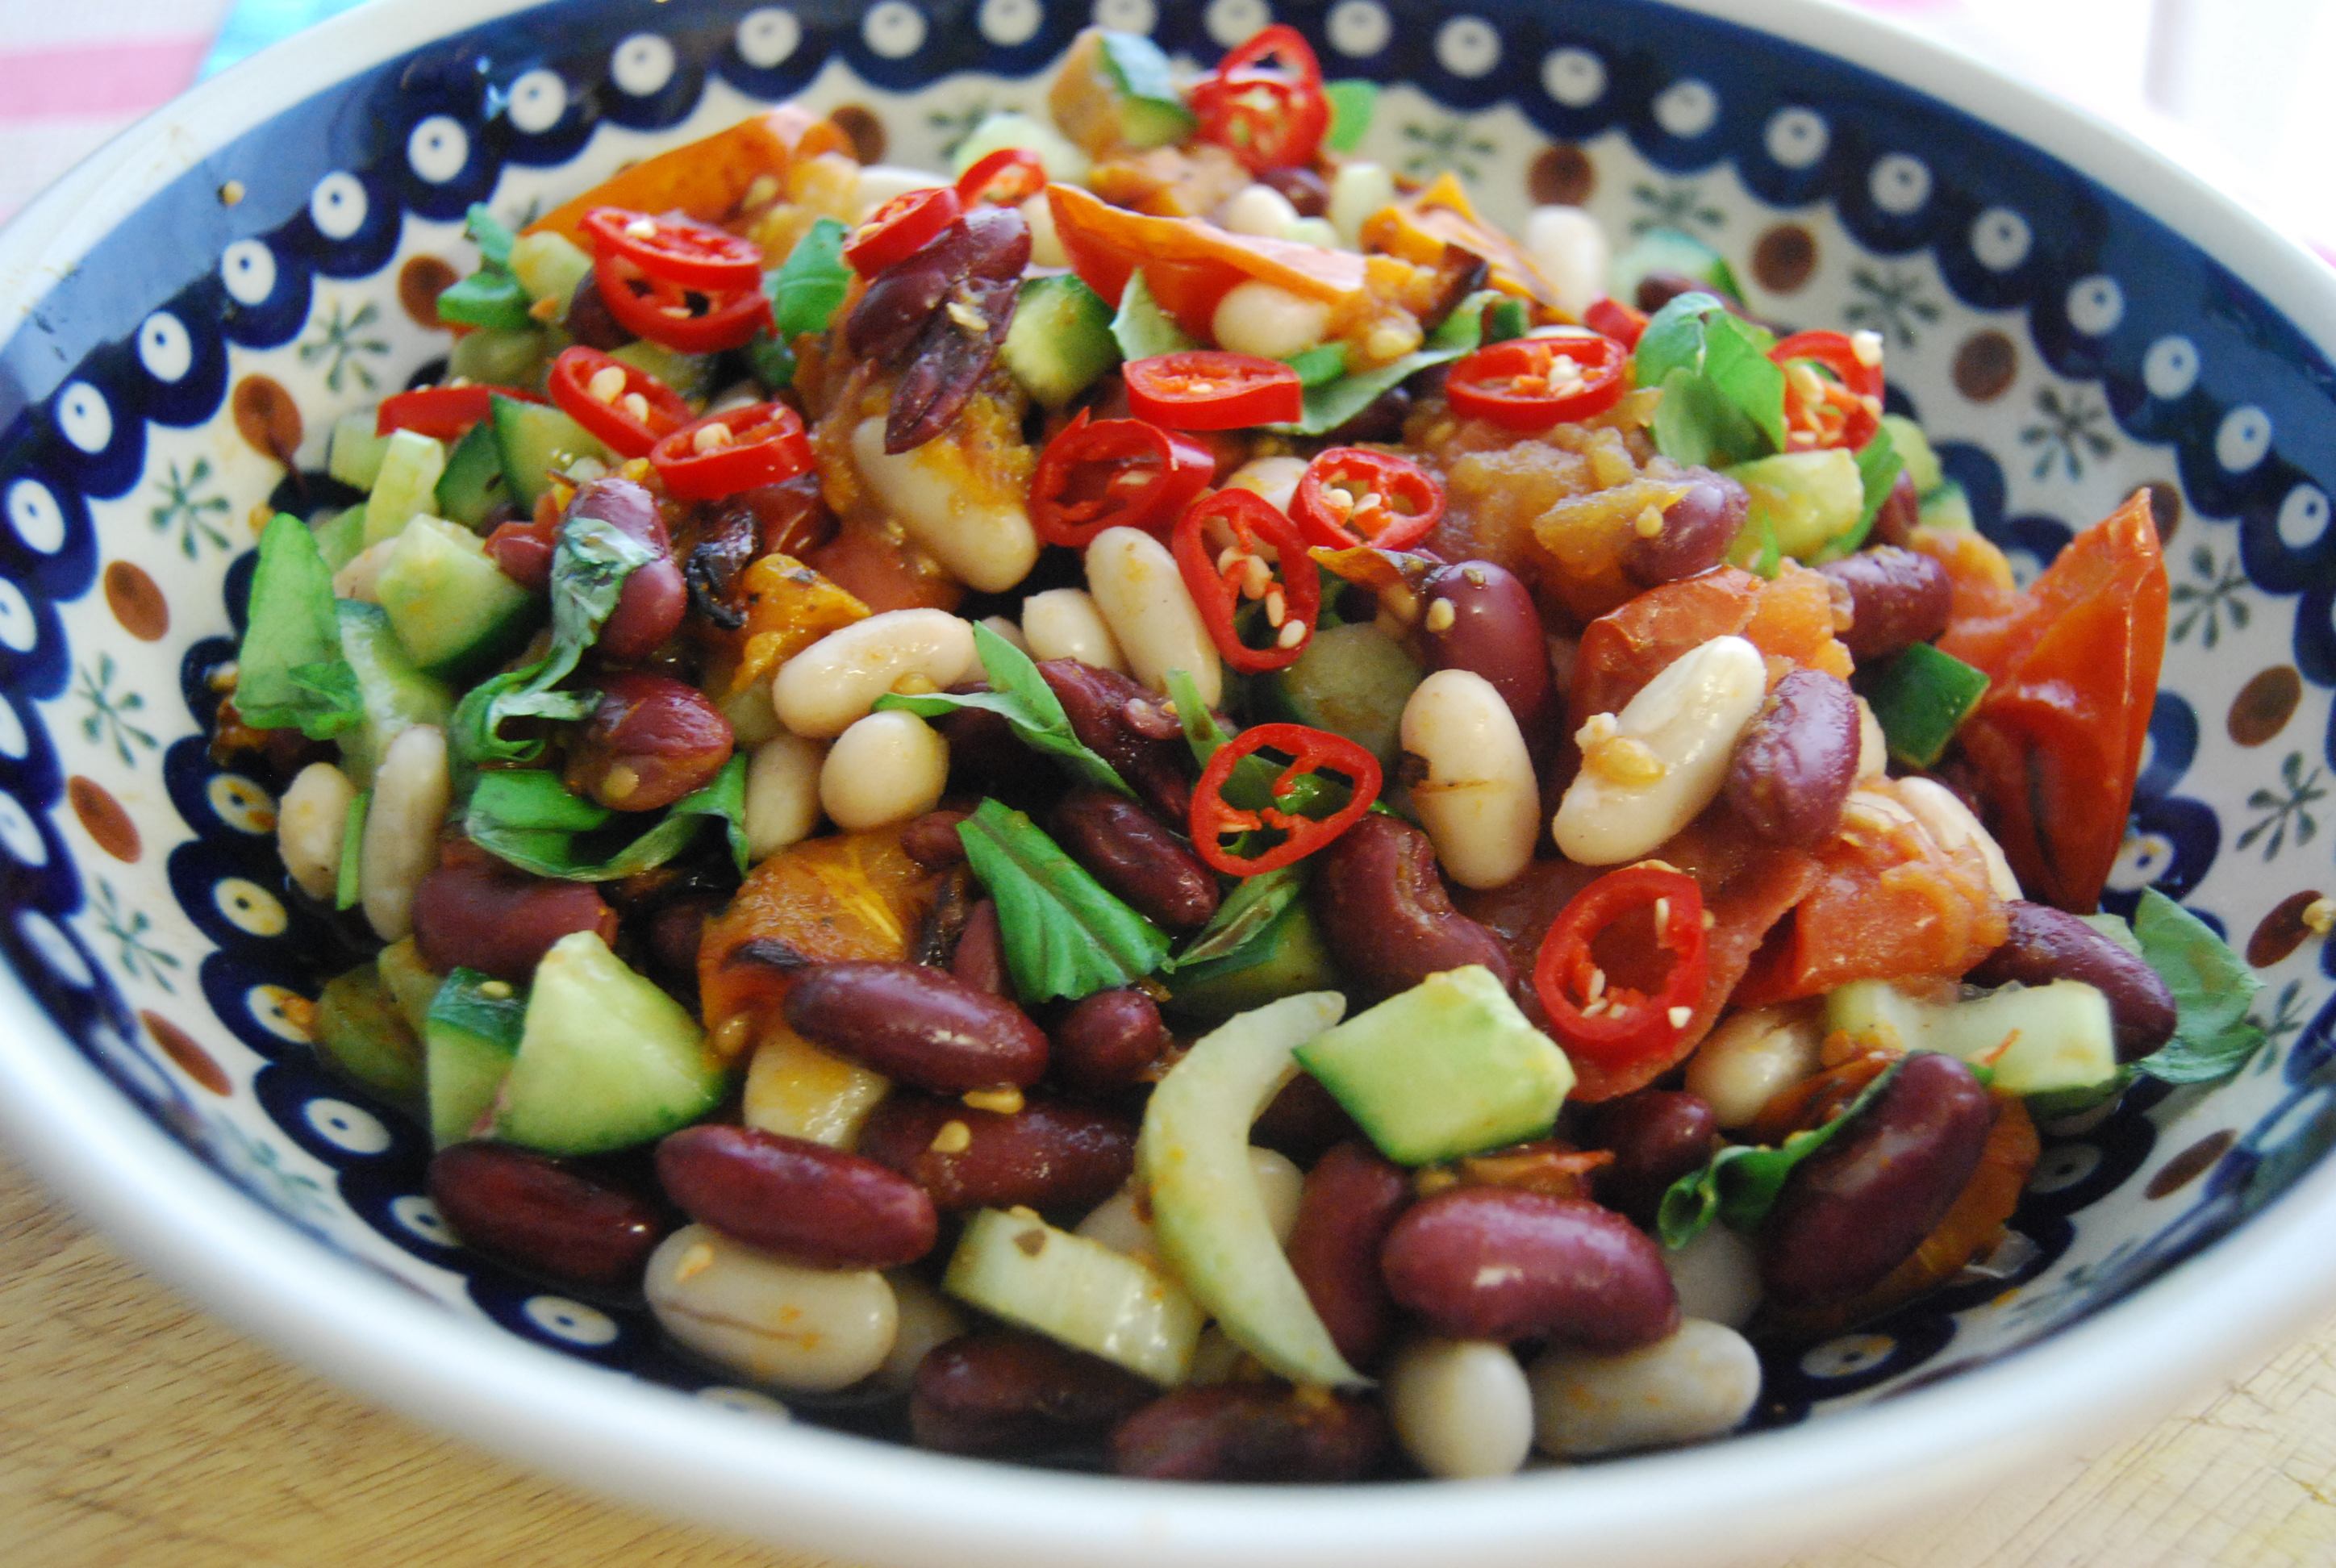 ... green bean and wax bean salad three bean salad black bean salad